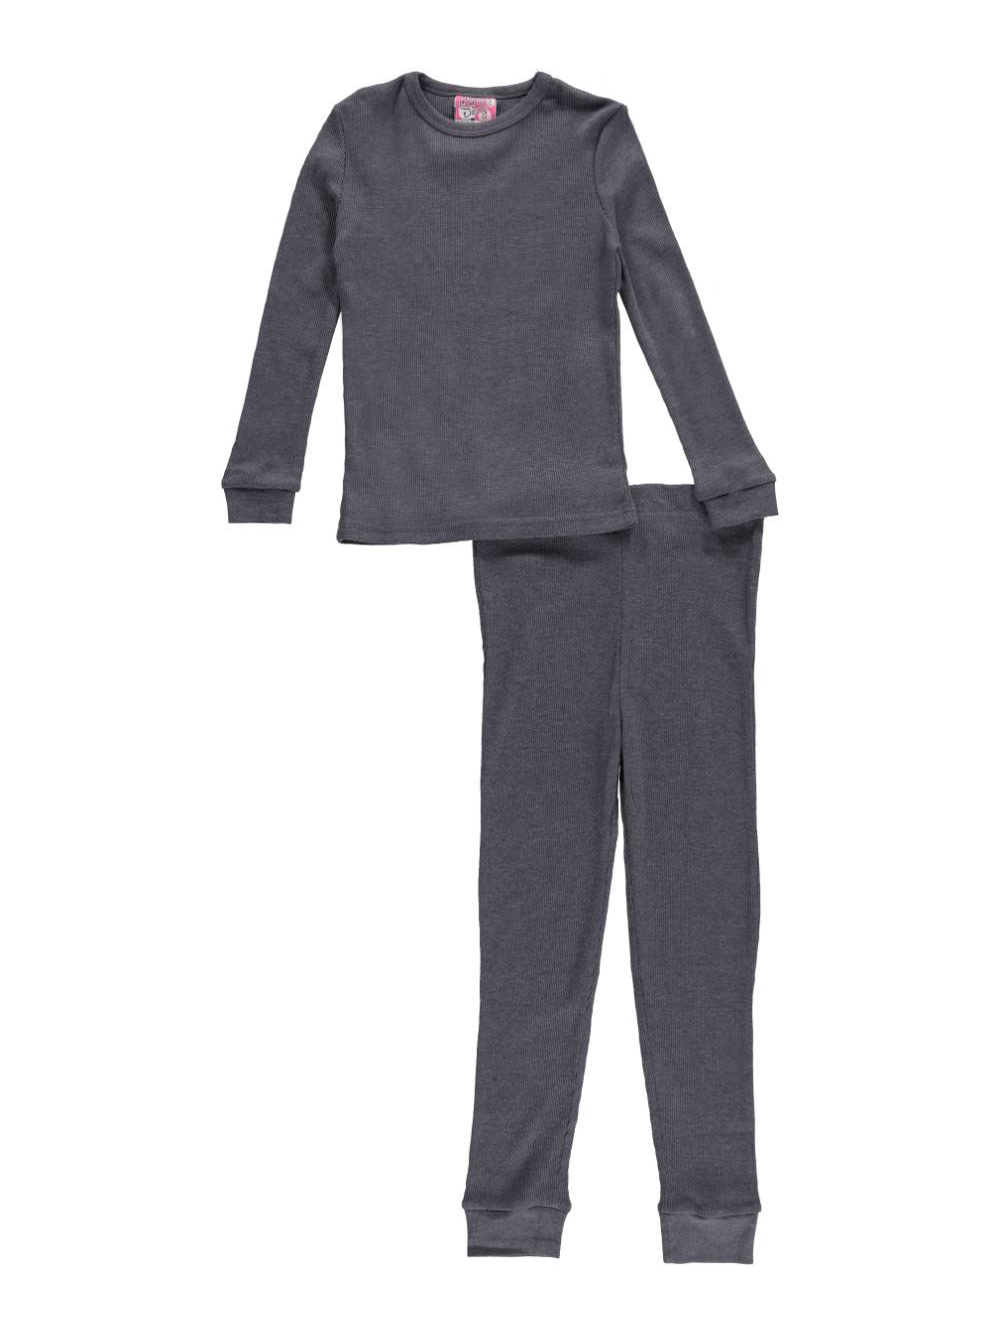 Ice2O Little Girls' Toddler 2-Piece Thermal Long Underwear ...